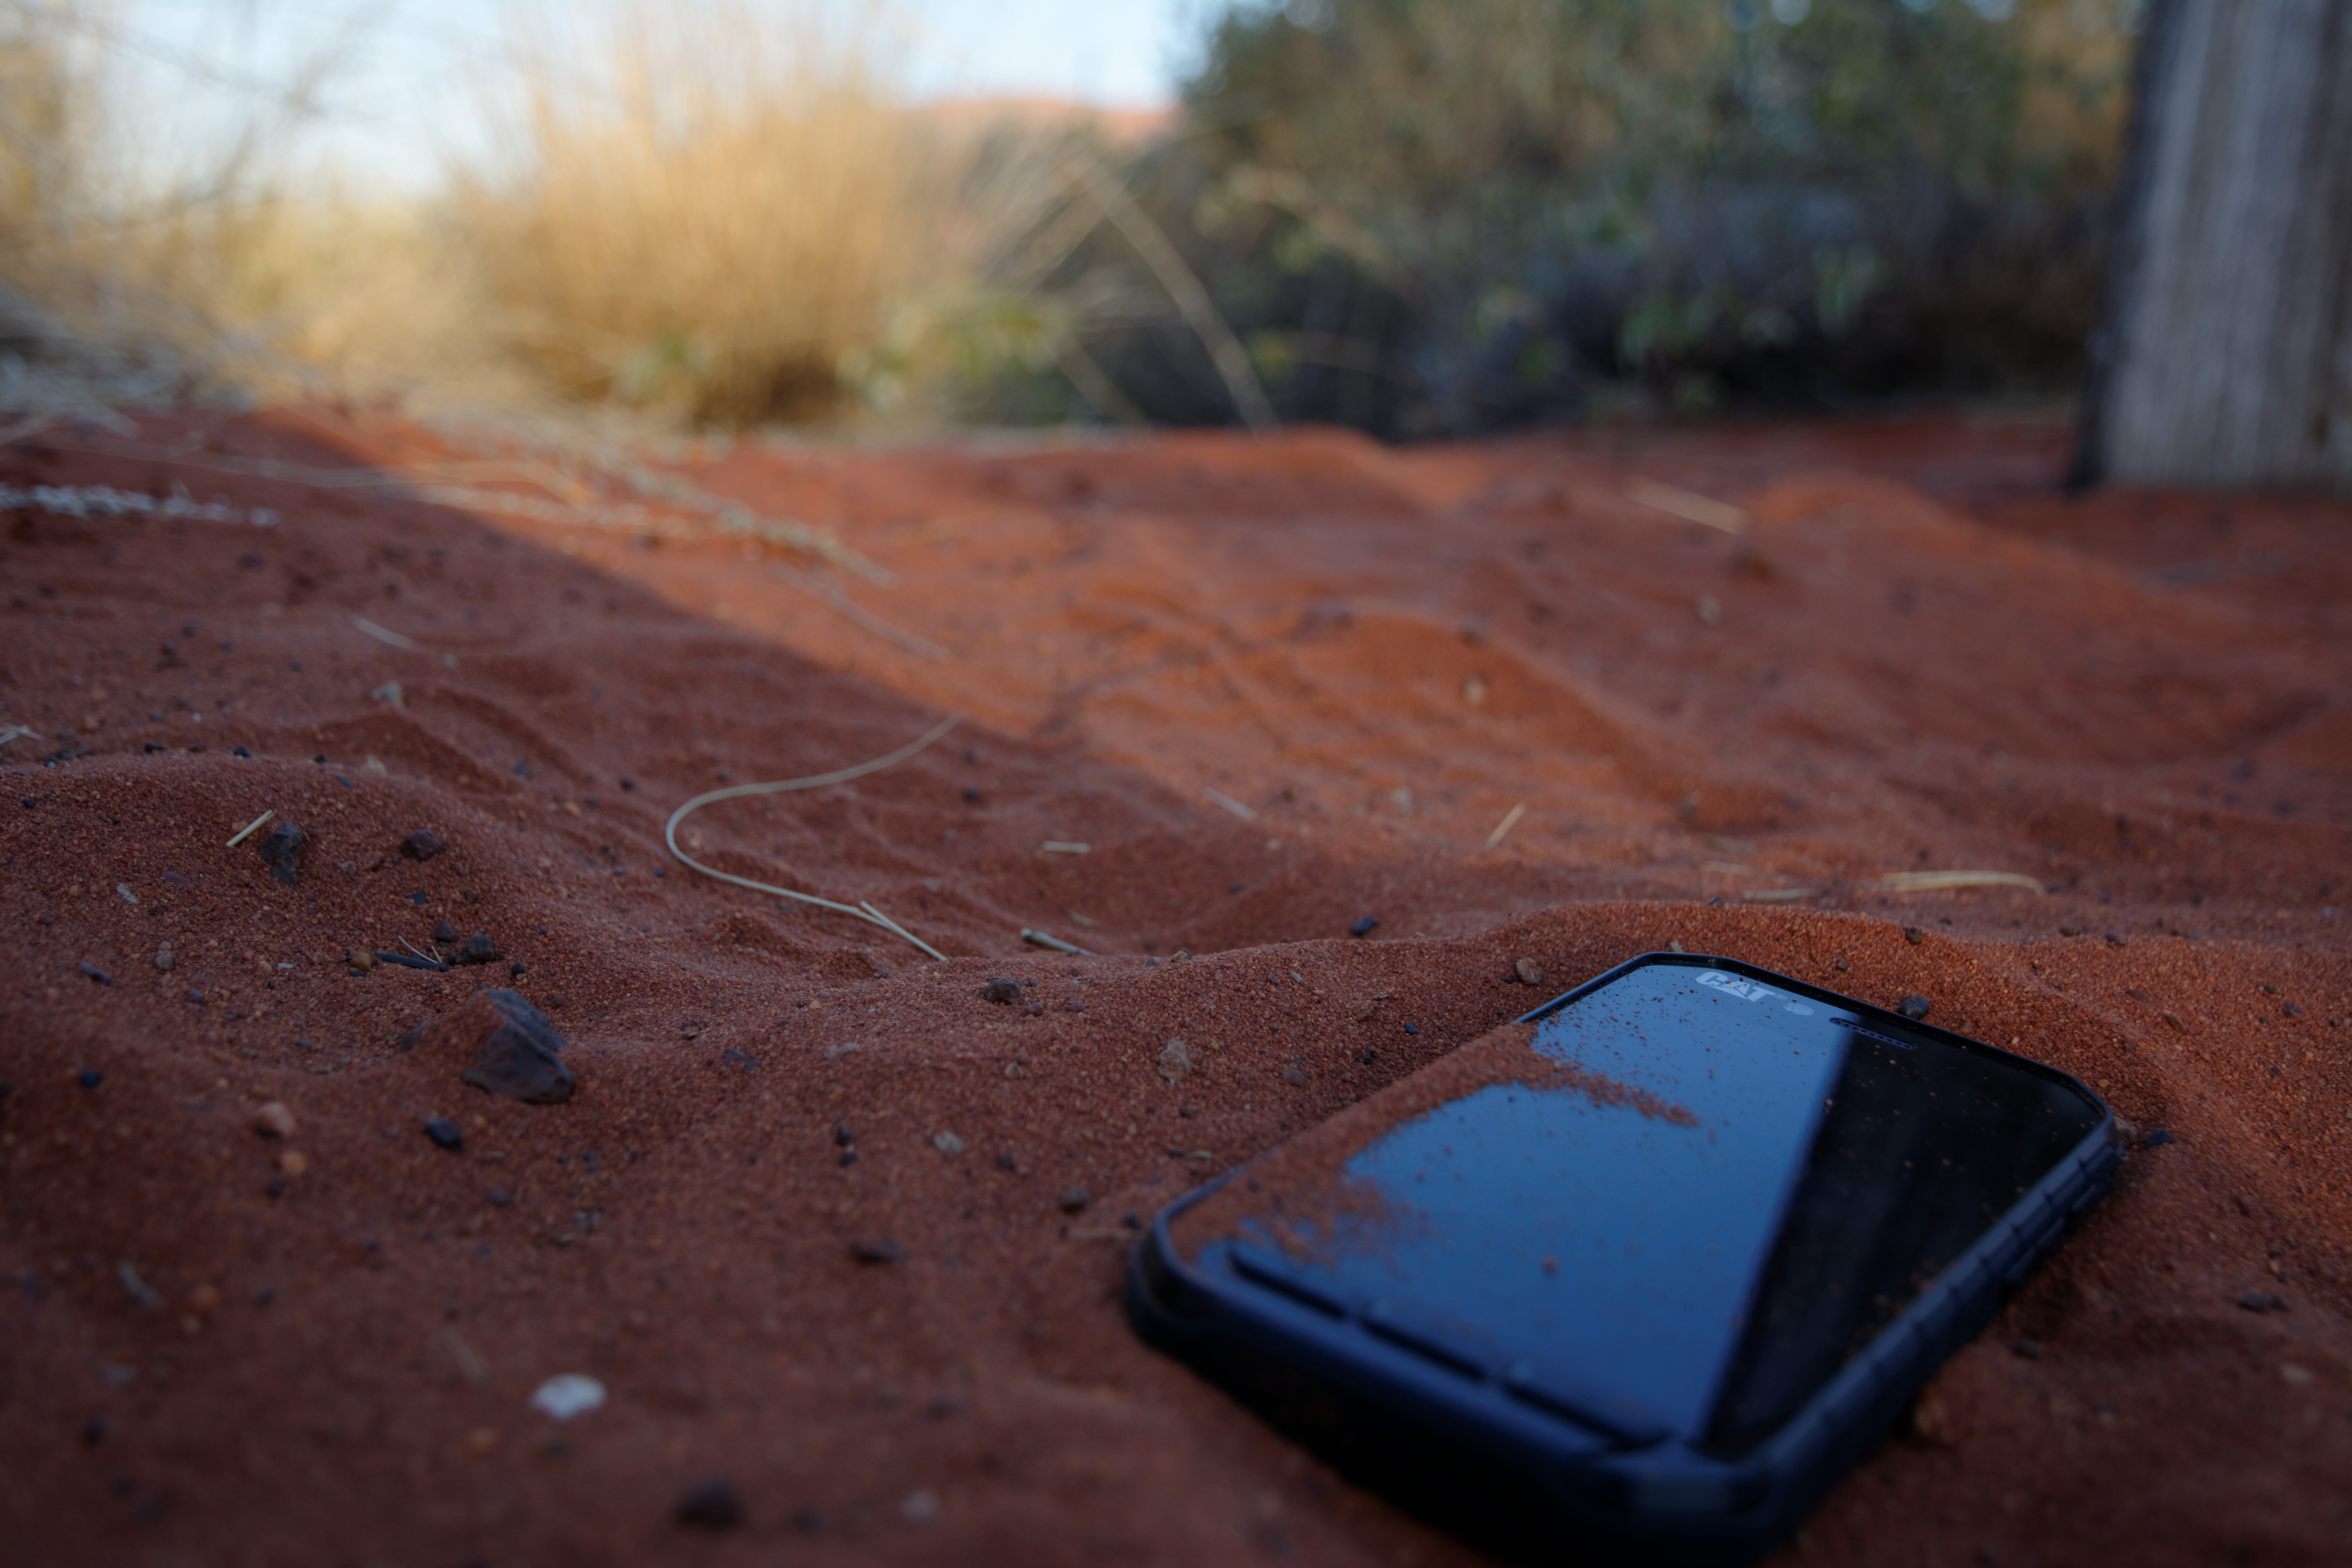 CAT S41 Review – Ein toughes Outdoor Smartphone auf Reisen